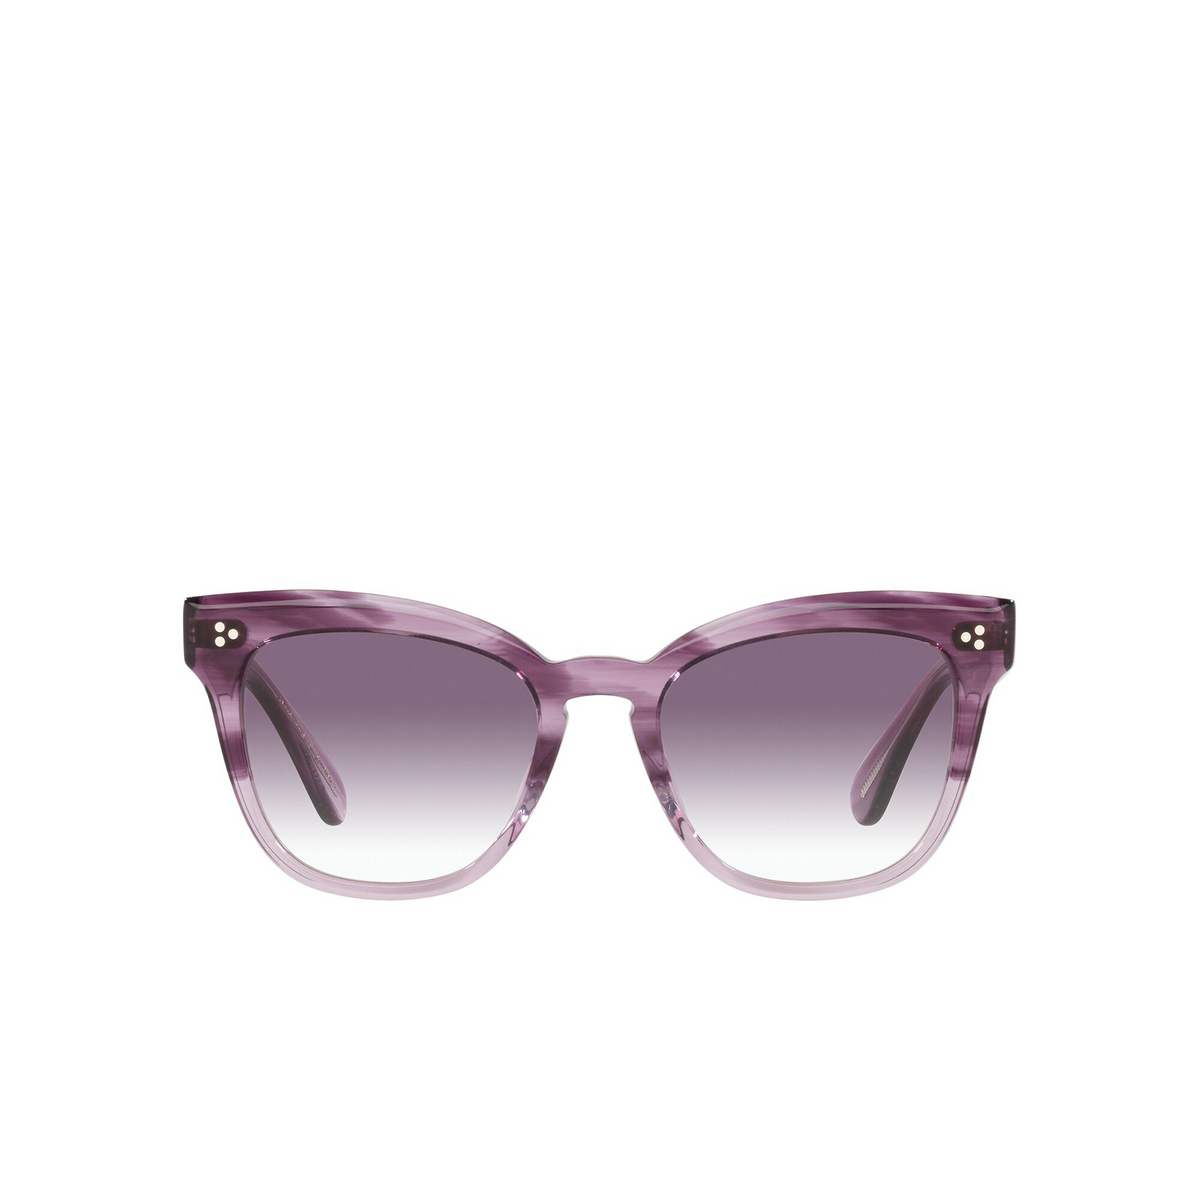 Oliver Peoples® Butterfly Sunglasses: Marianela OV5372SU color Jacaranda Gradient 16918H - front view.